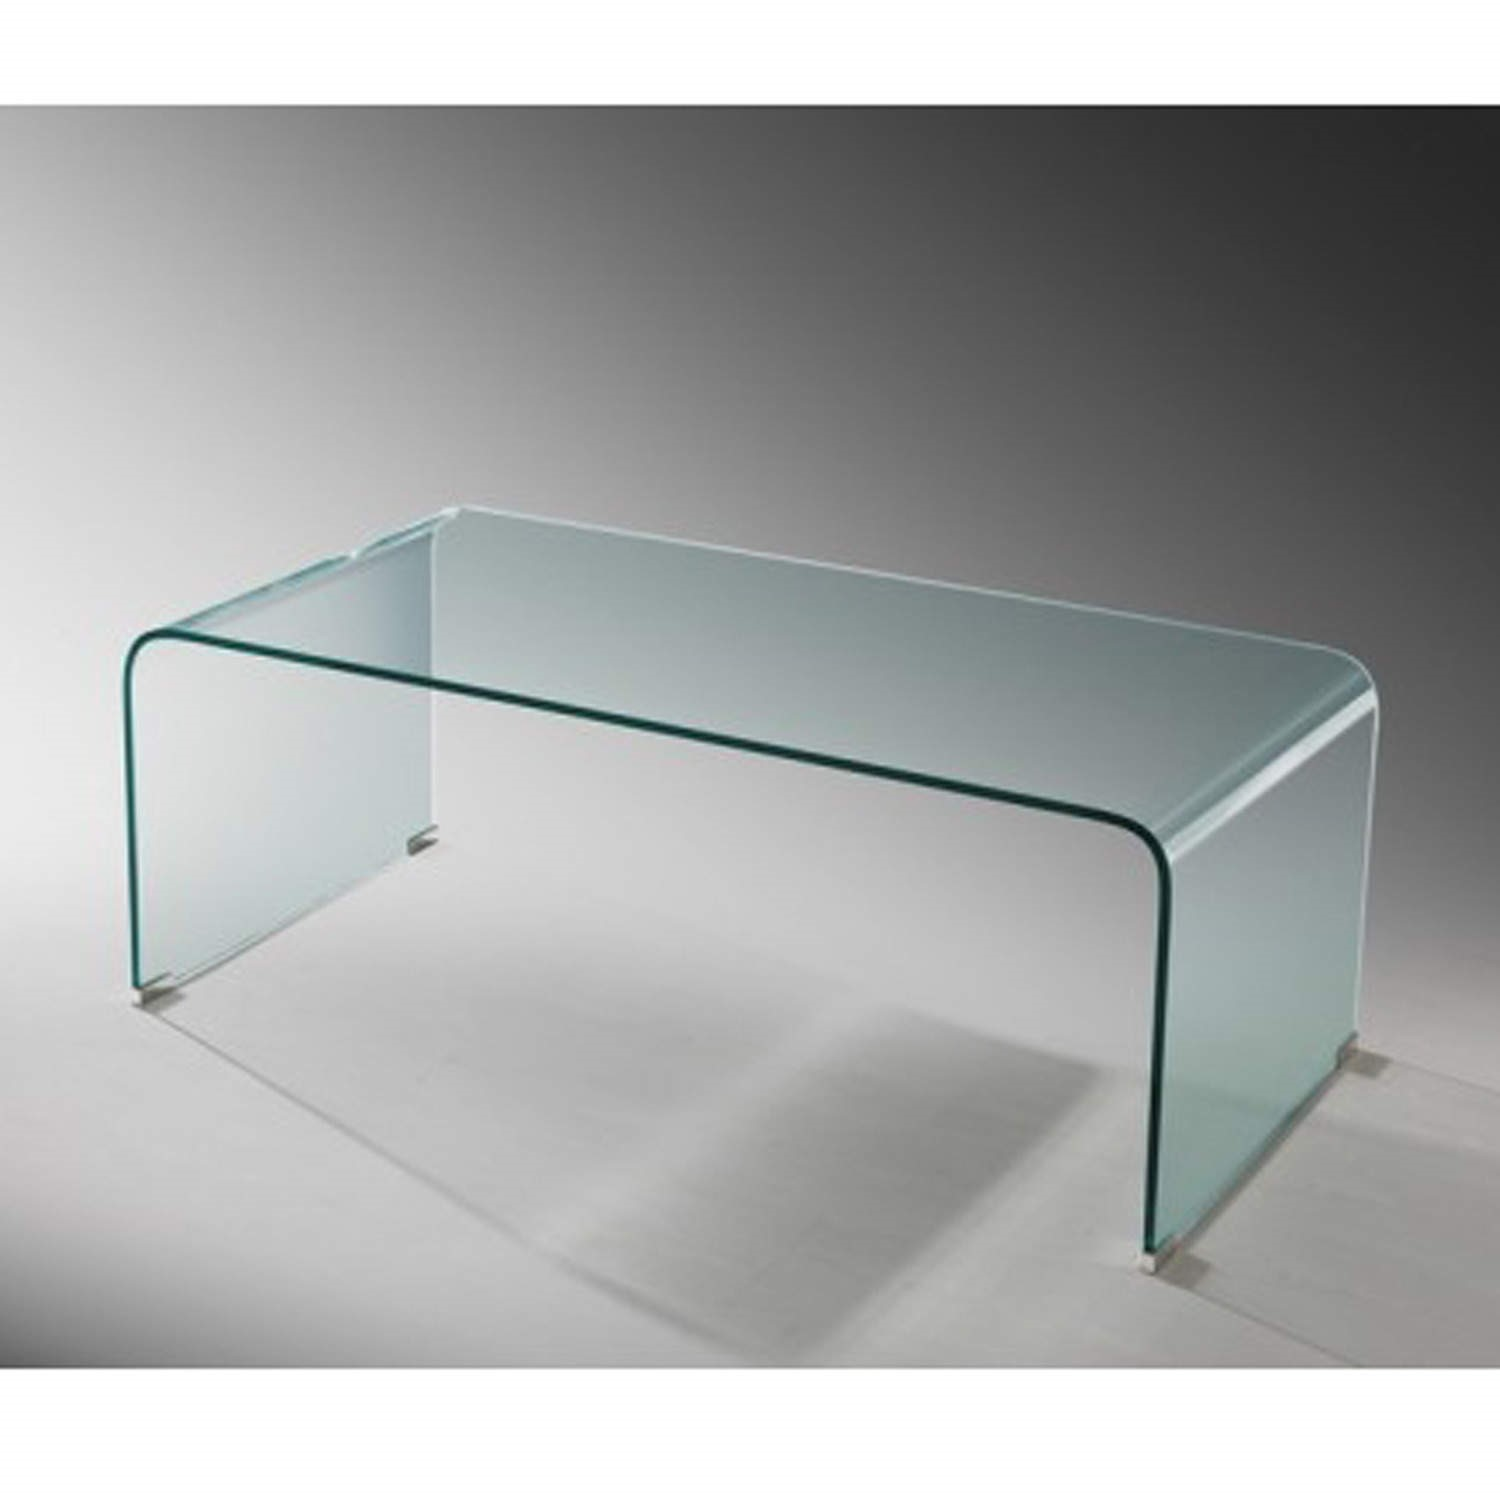 Curved Glass Coffee Table Lpd Azurro Furniture123